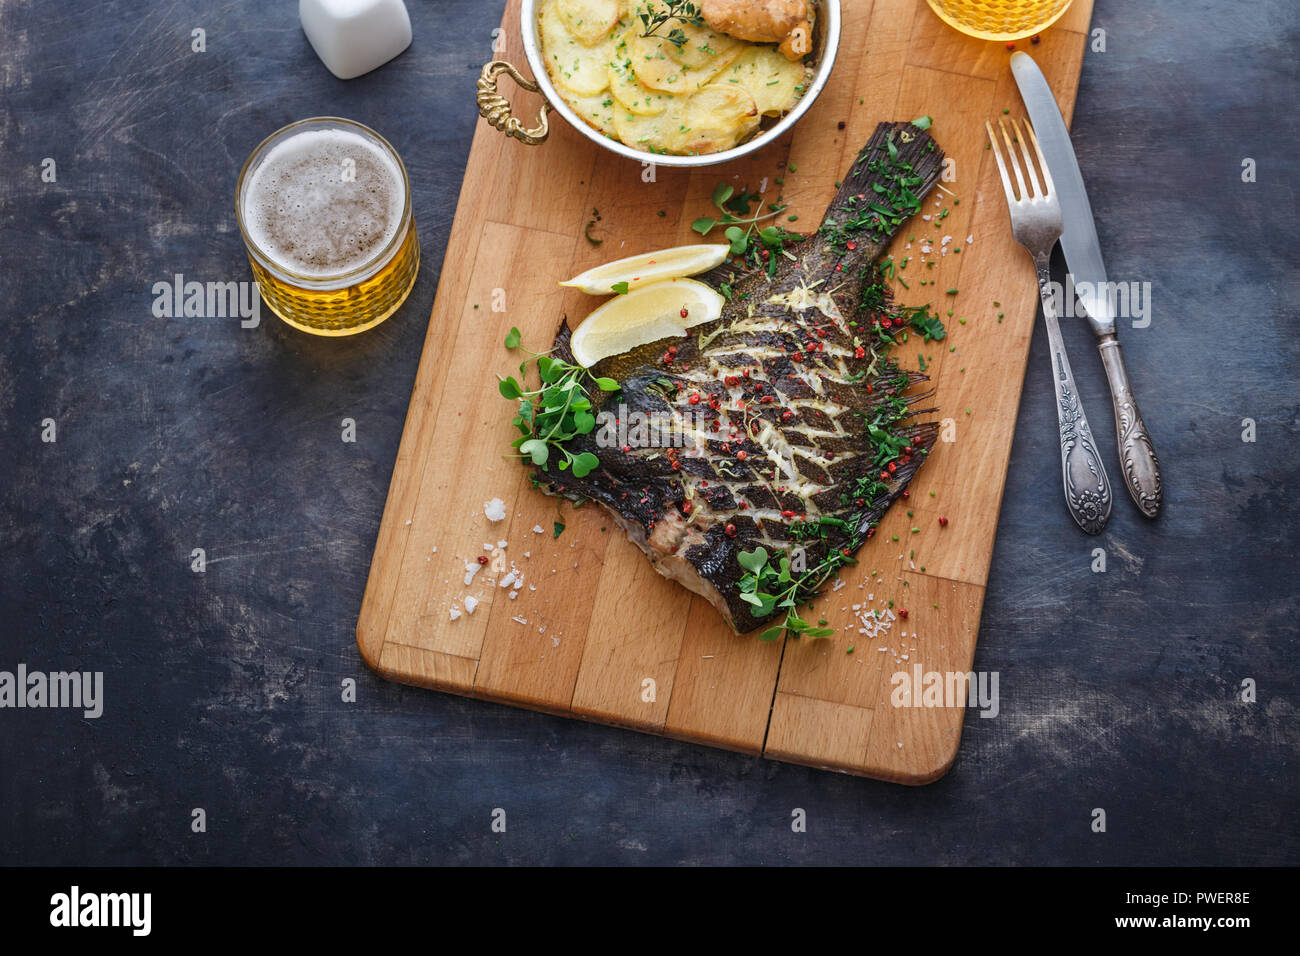 Baked flatfish with potato gratin and beer, copy space - Stock Image